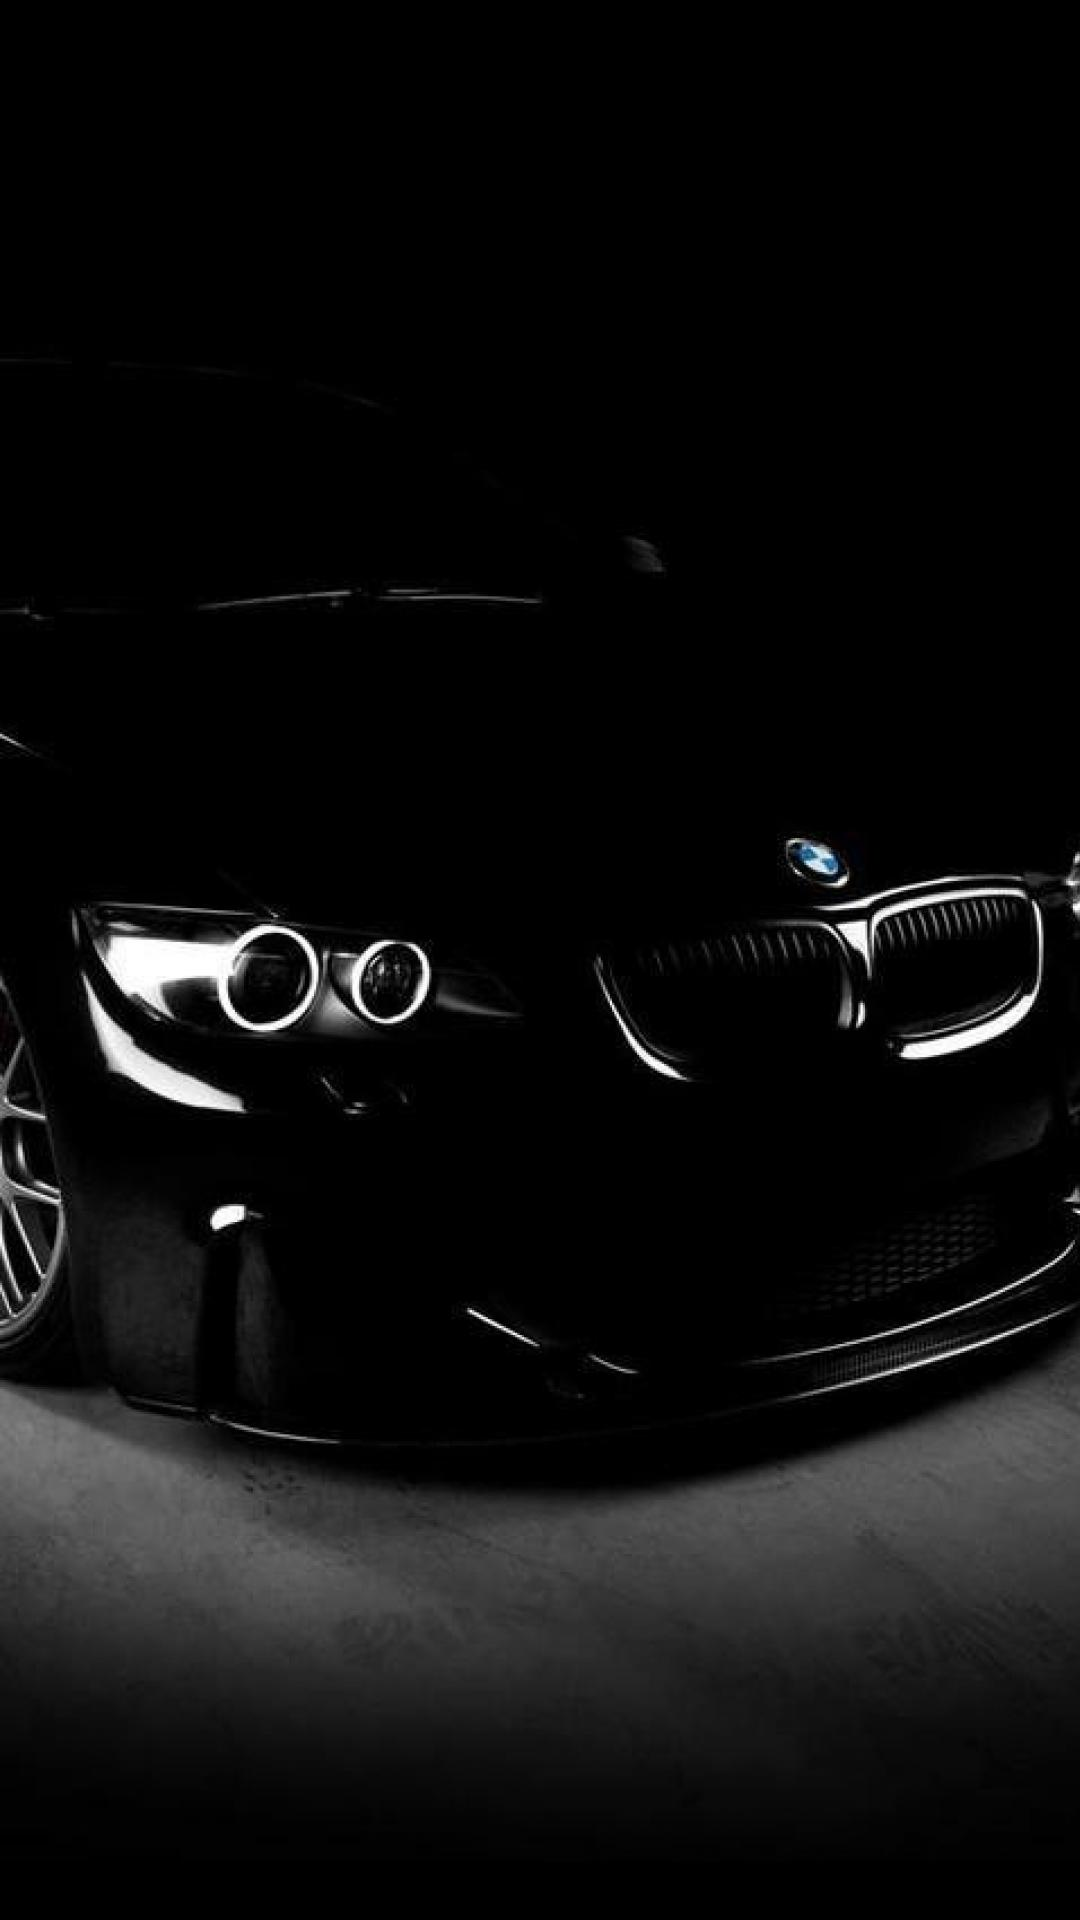 Samsung Beamer Samsung Galaxy S5 Neo Wallpapers Bmw Android Wallpapers